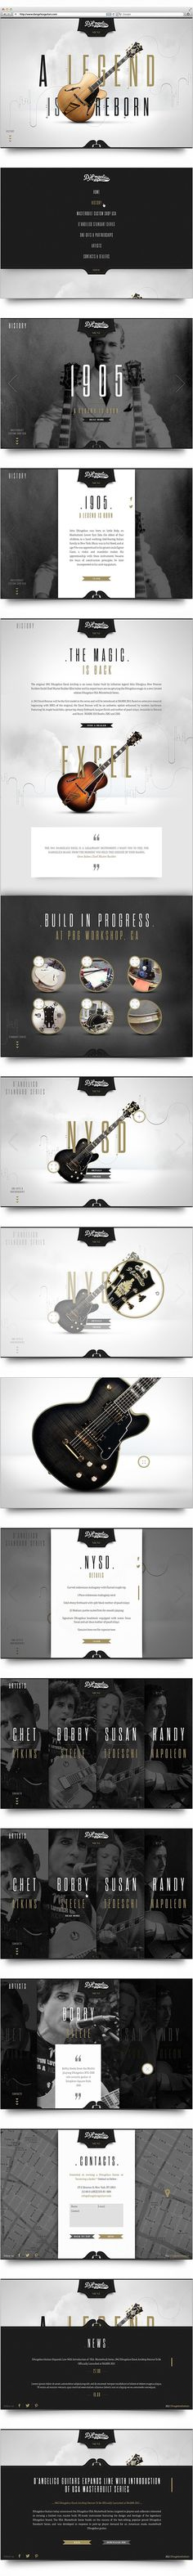 D'Angelico Guitars on Behance #web